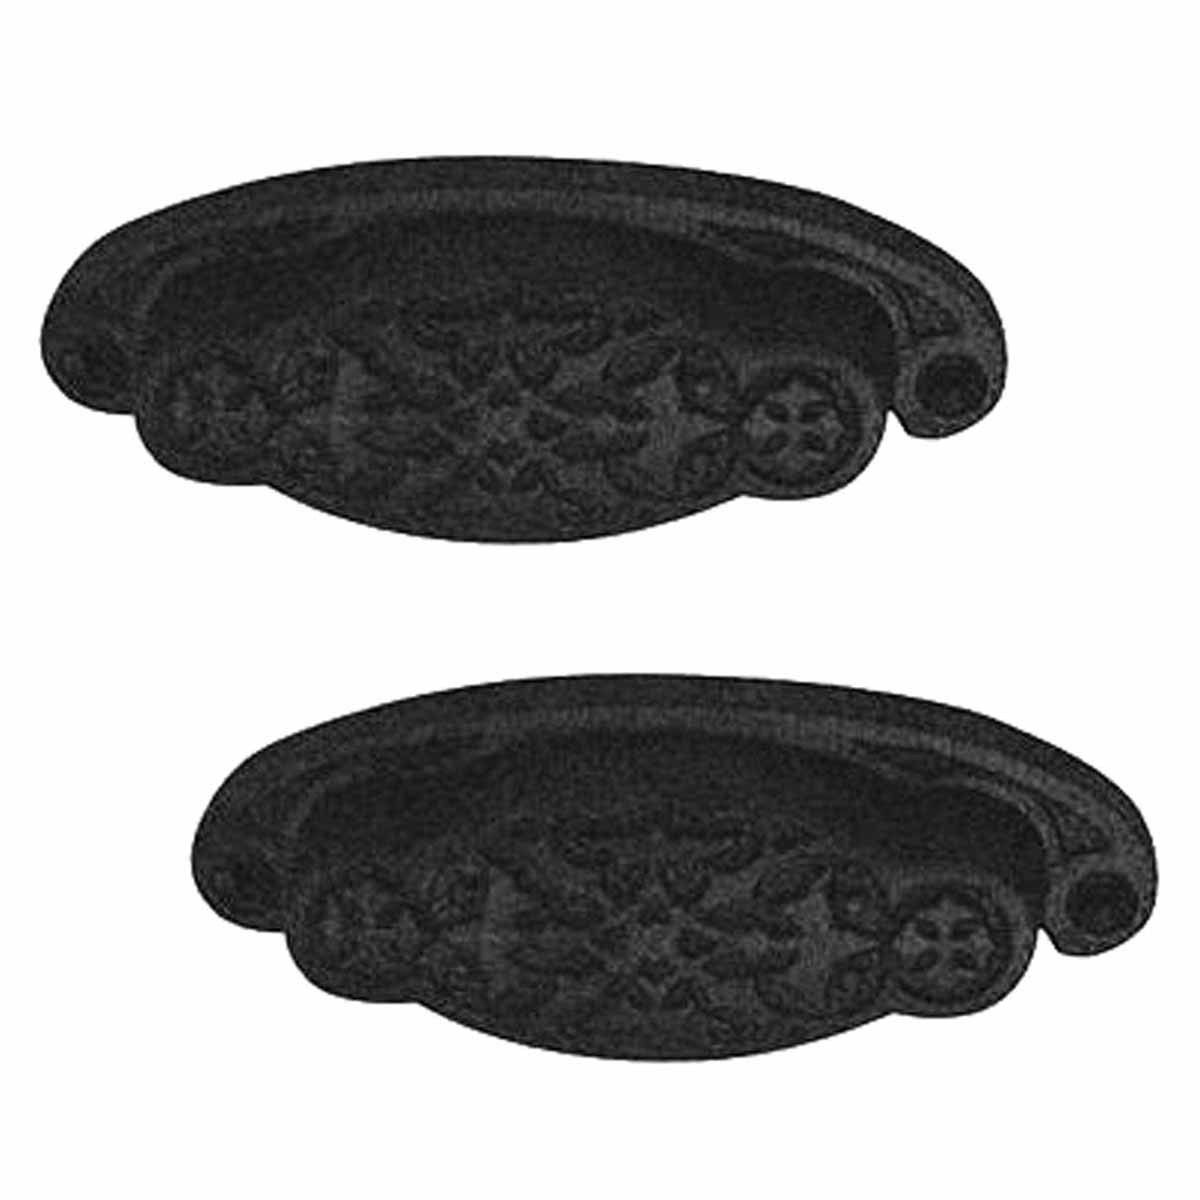 """2 Cabinet or Drawer Bin Pull Black Iron Cup 3 3/4"""" x 1 3/8"""" H"""